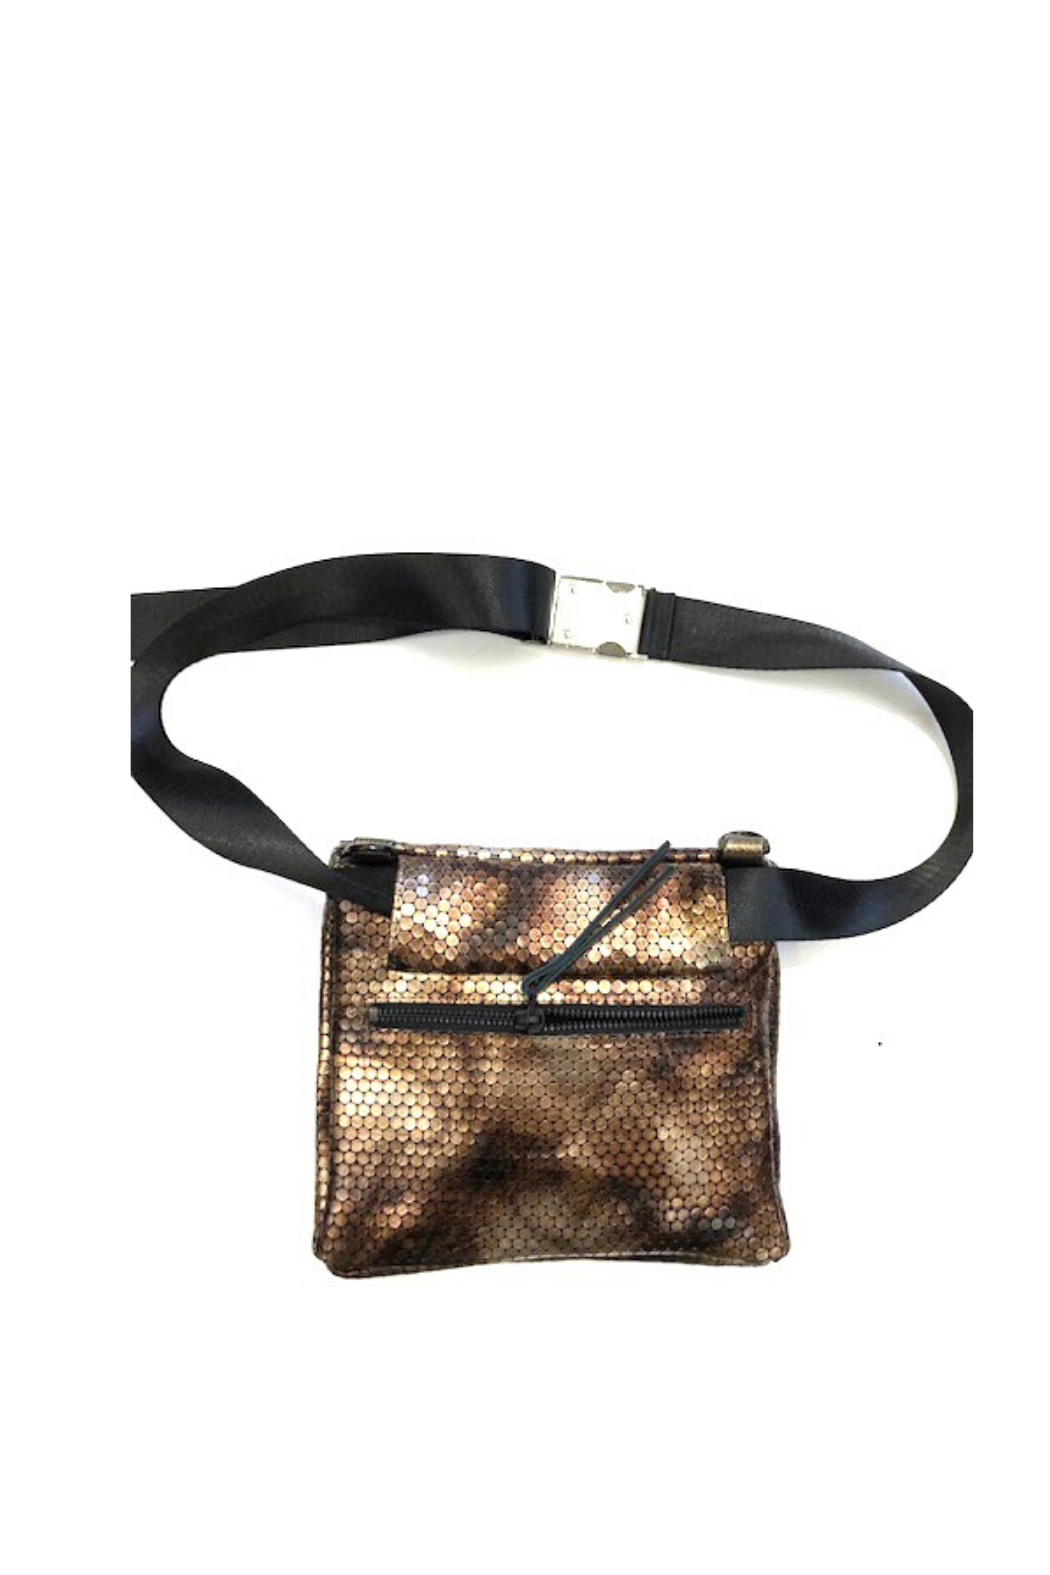 daniella lehavi Nova Crossbody Pouch With Belt Bag Option - Front Full Image